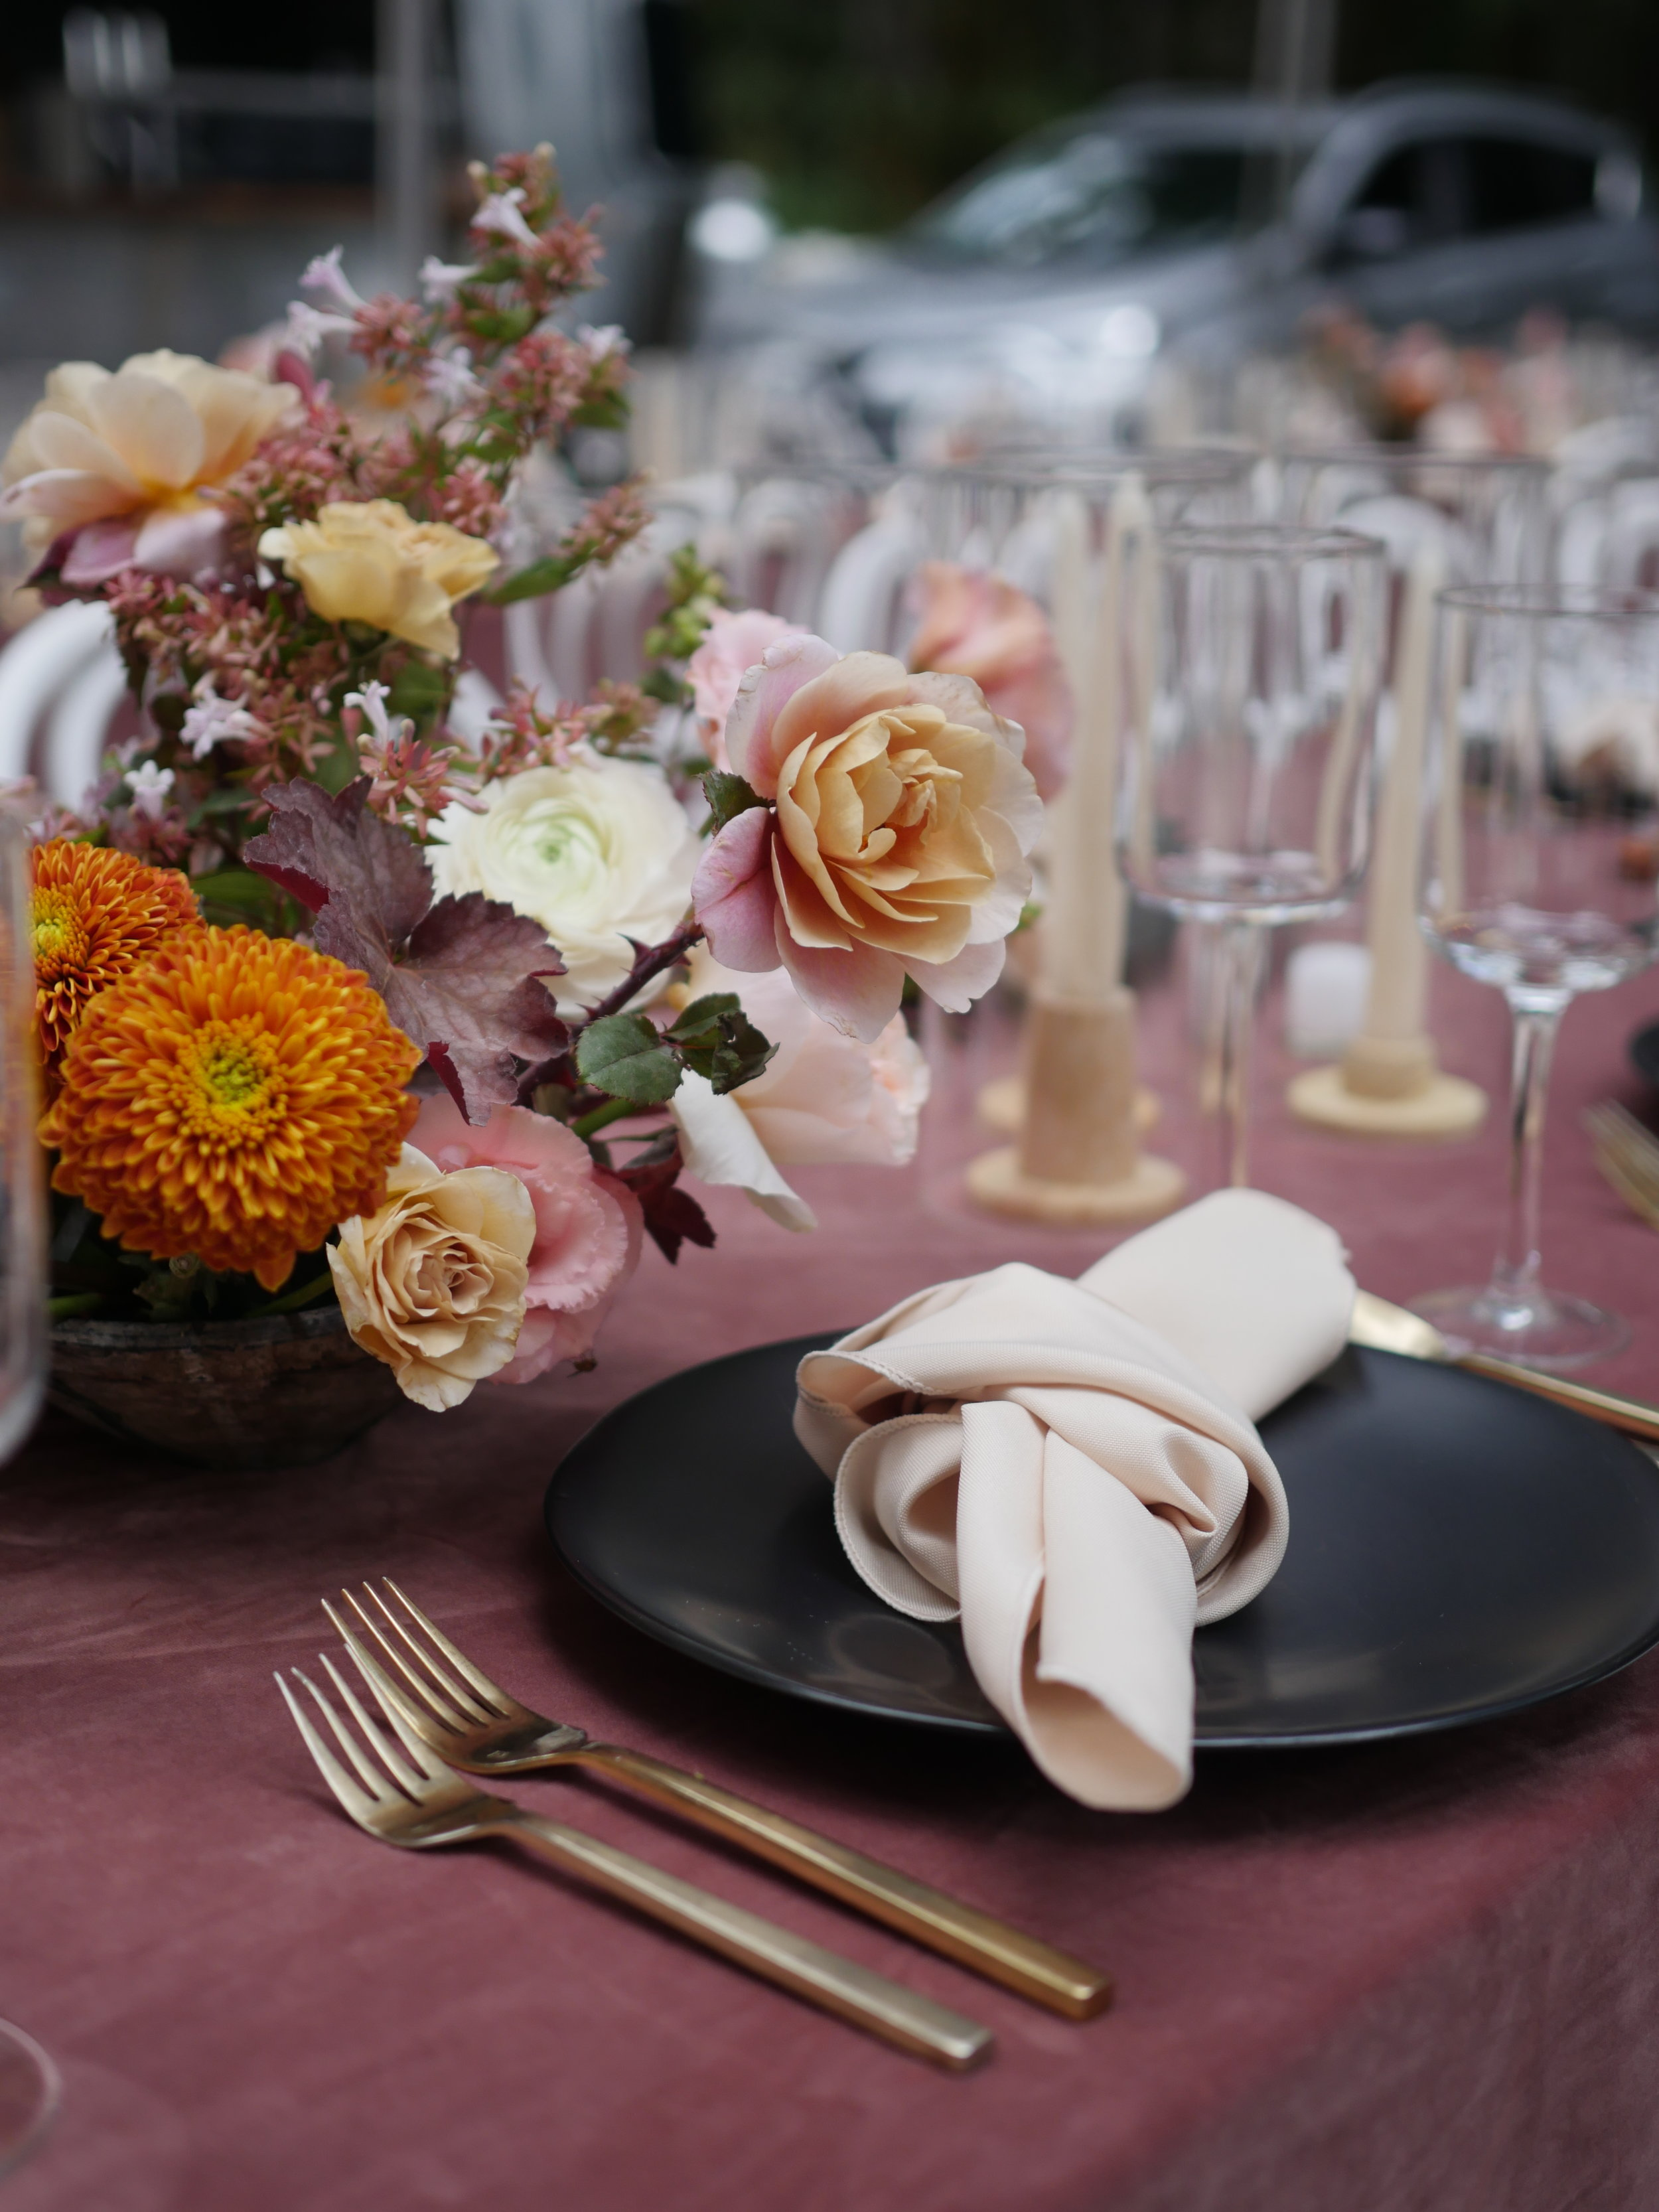 Wedding placesettings and flowers by Color Theory Collective